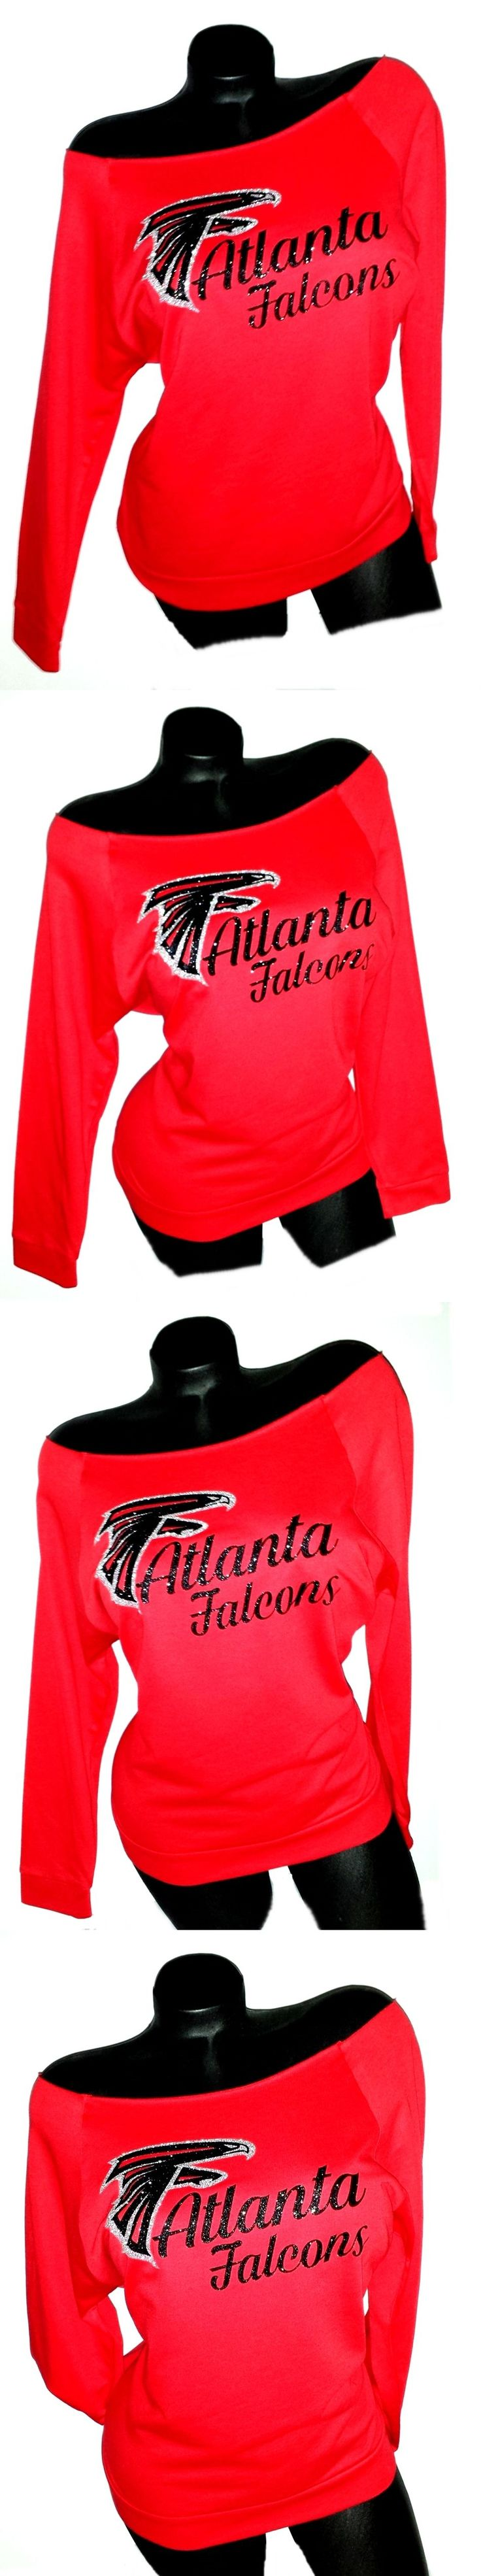 Women 159110: Atlanta Falcons Red Scoop Neck Rawedge Terry Lt.Wt.Jersey 3 4 Sleeve!Super Bowl! -> BUY IT NOW ONLY: $32.99 on eBay!